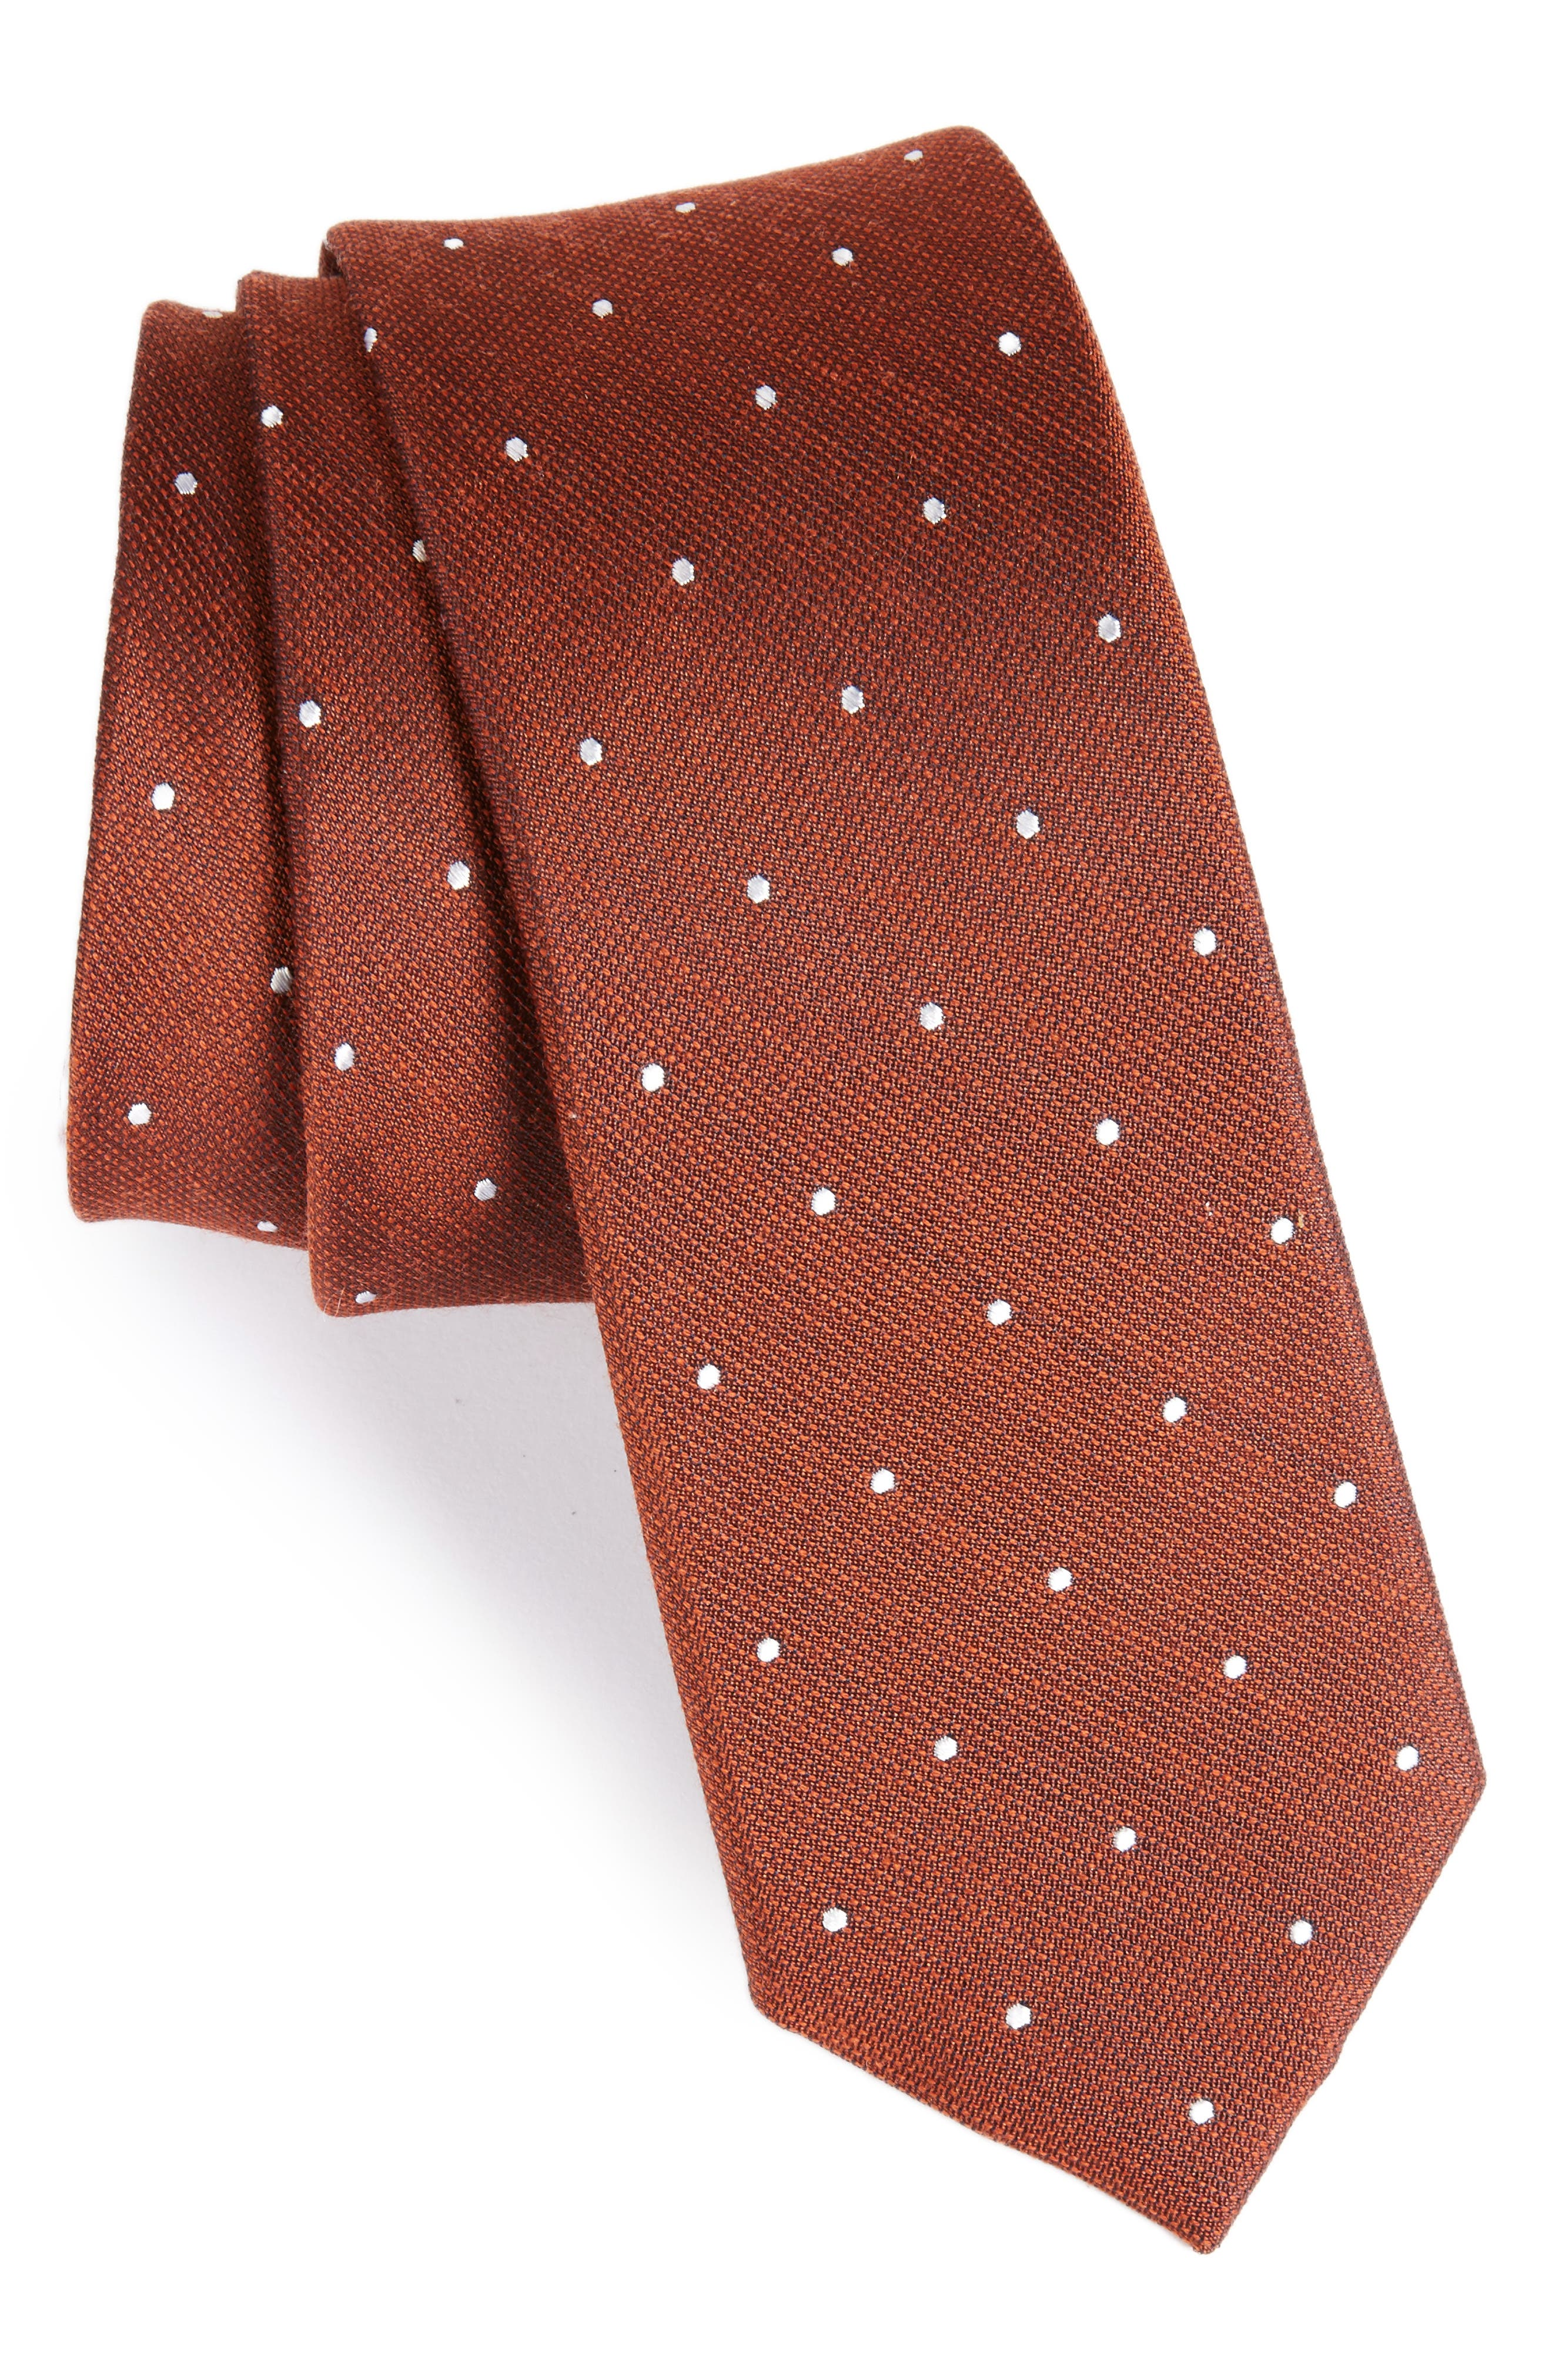 The Tie Bar Dotted Report Silk & Wool Tie